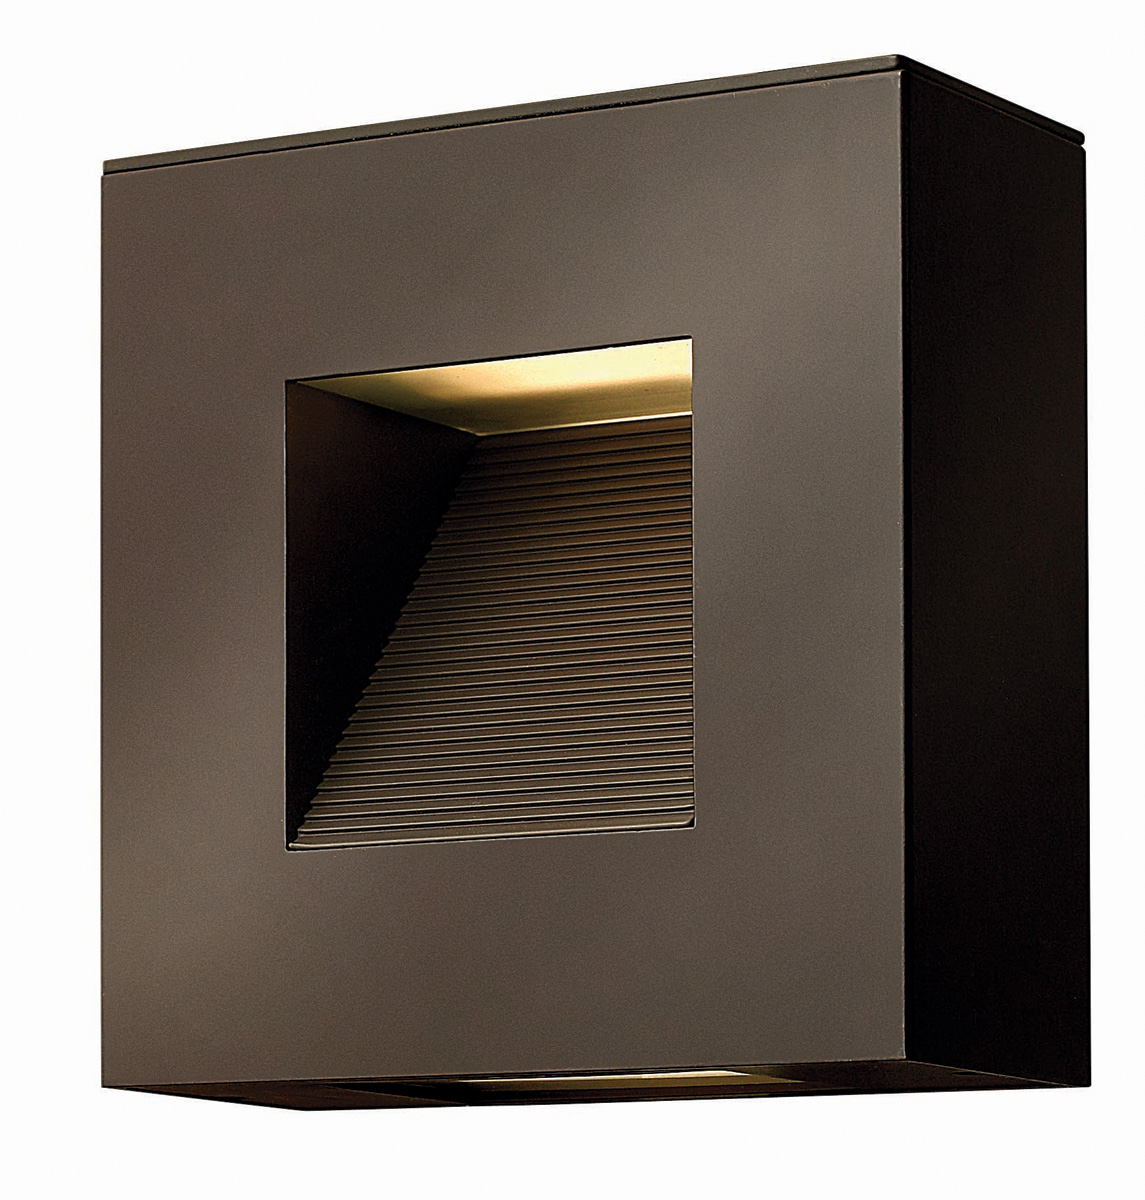 Luna Square Outdoor Wall Sconce by Hinkley Lighting   1647bz